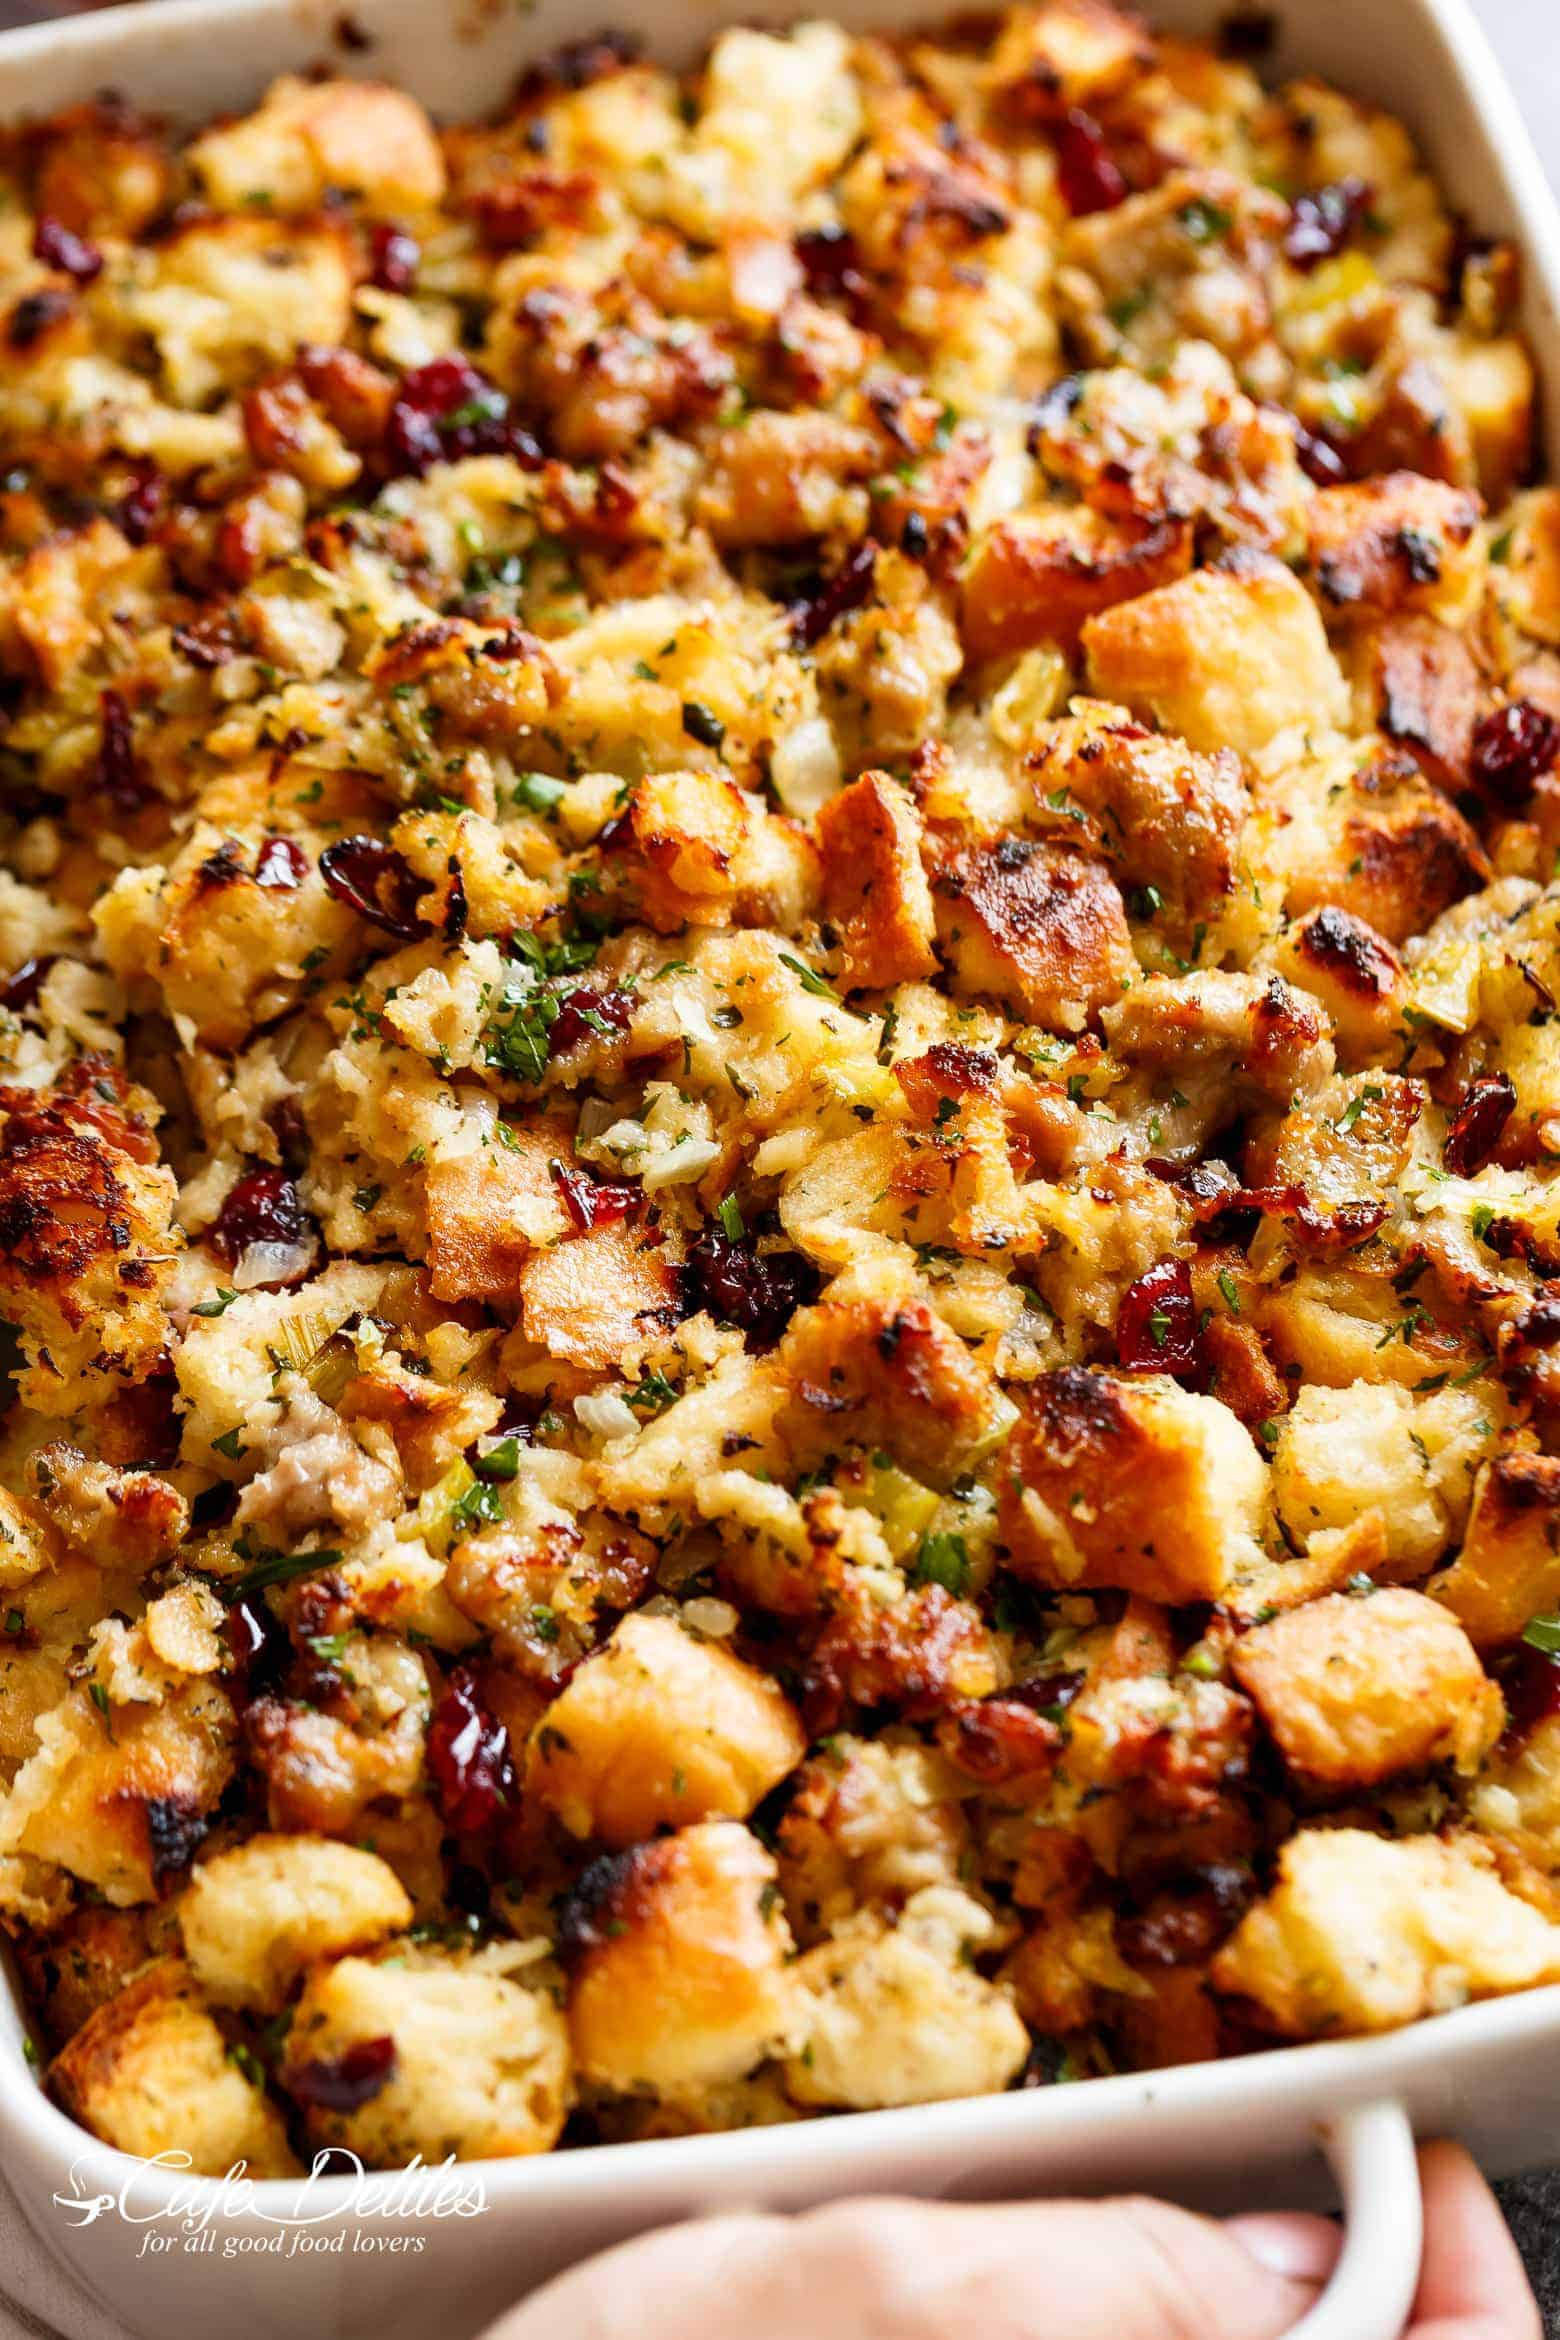 Sausage & Herb Stuffing Recipe is FULLY STUFFED with so much flavour, and perfect for serving as a Thanksgiving side with gravy!